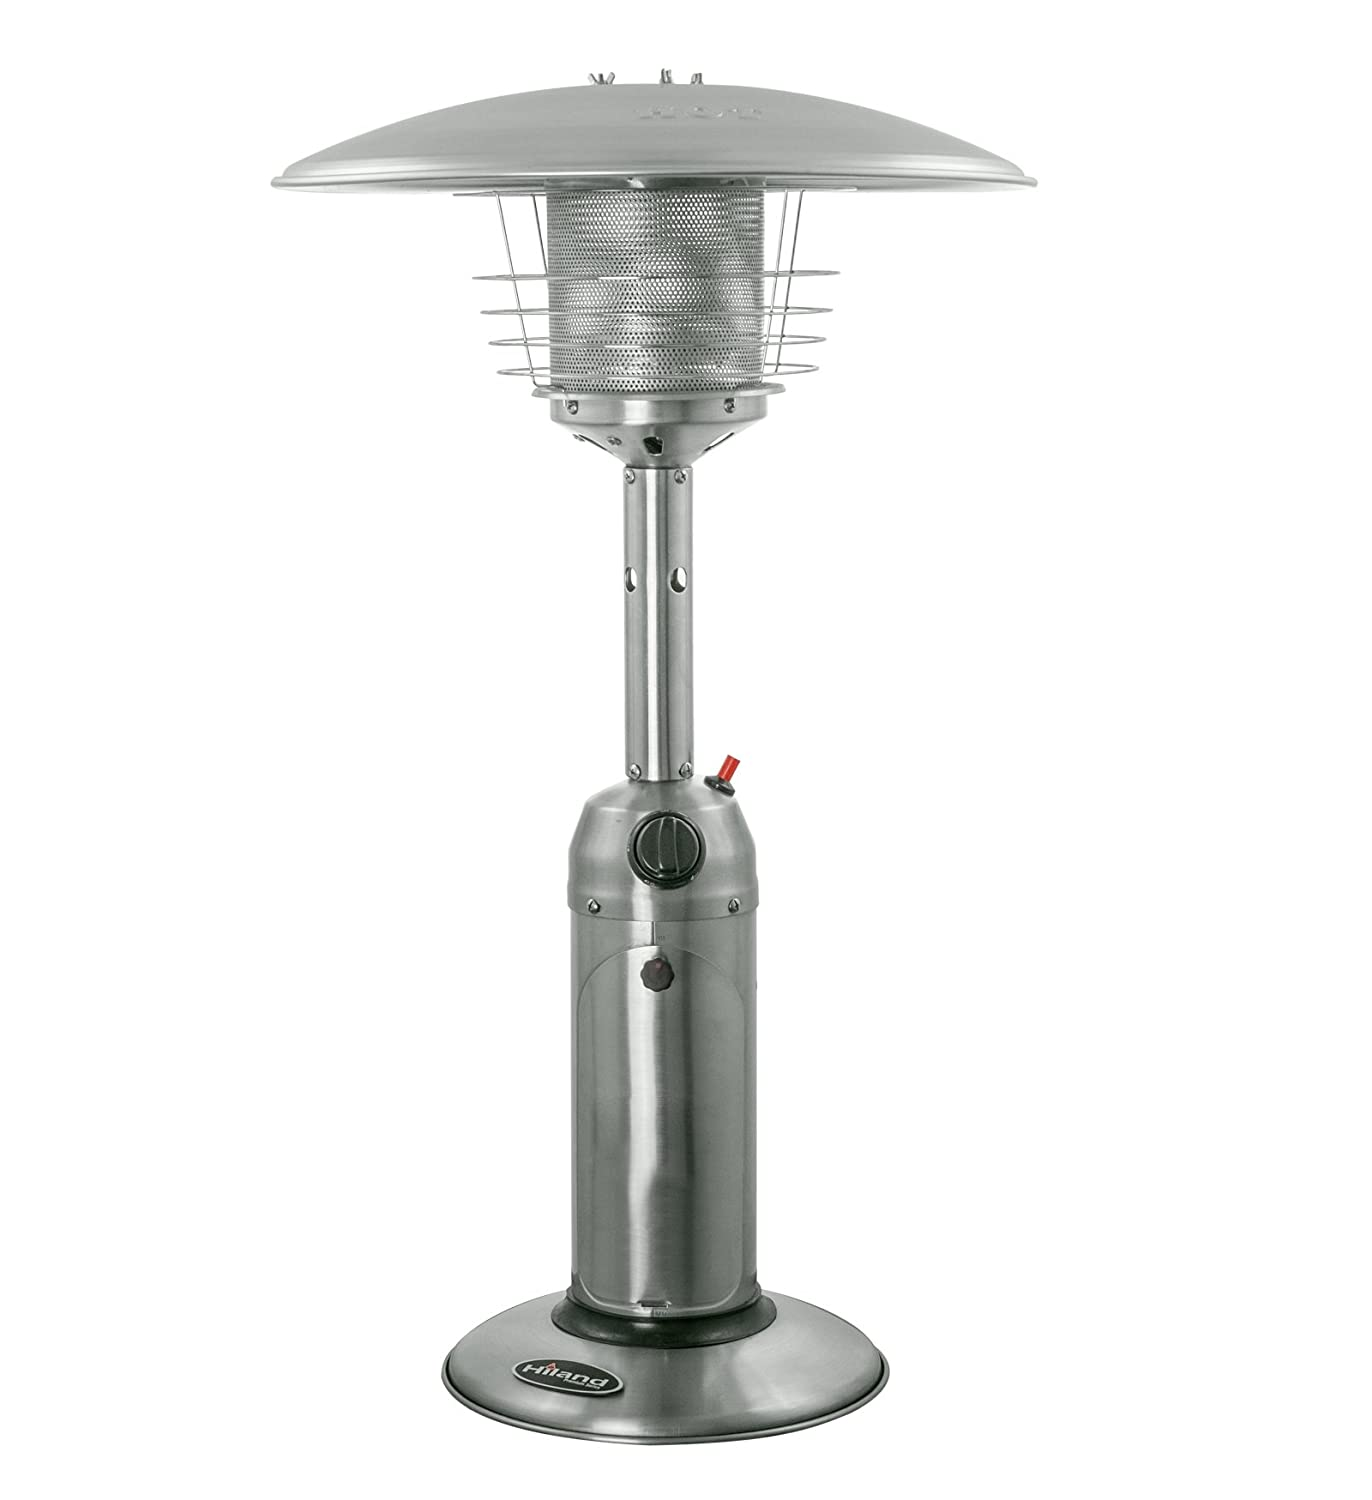 Amazon AZ Patio Heaters HLDS032 B Portable Table Top